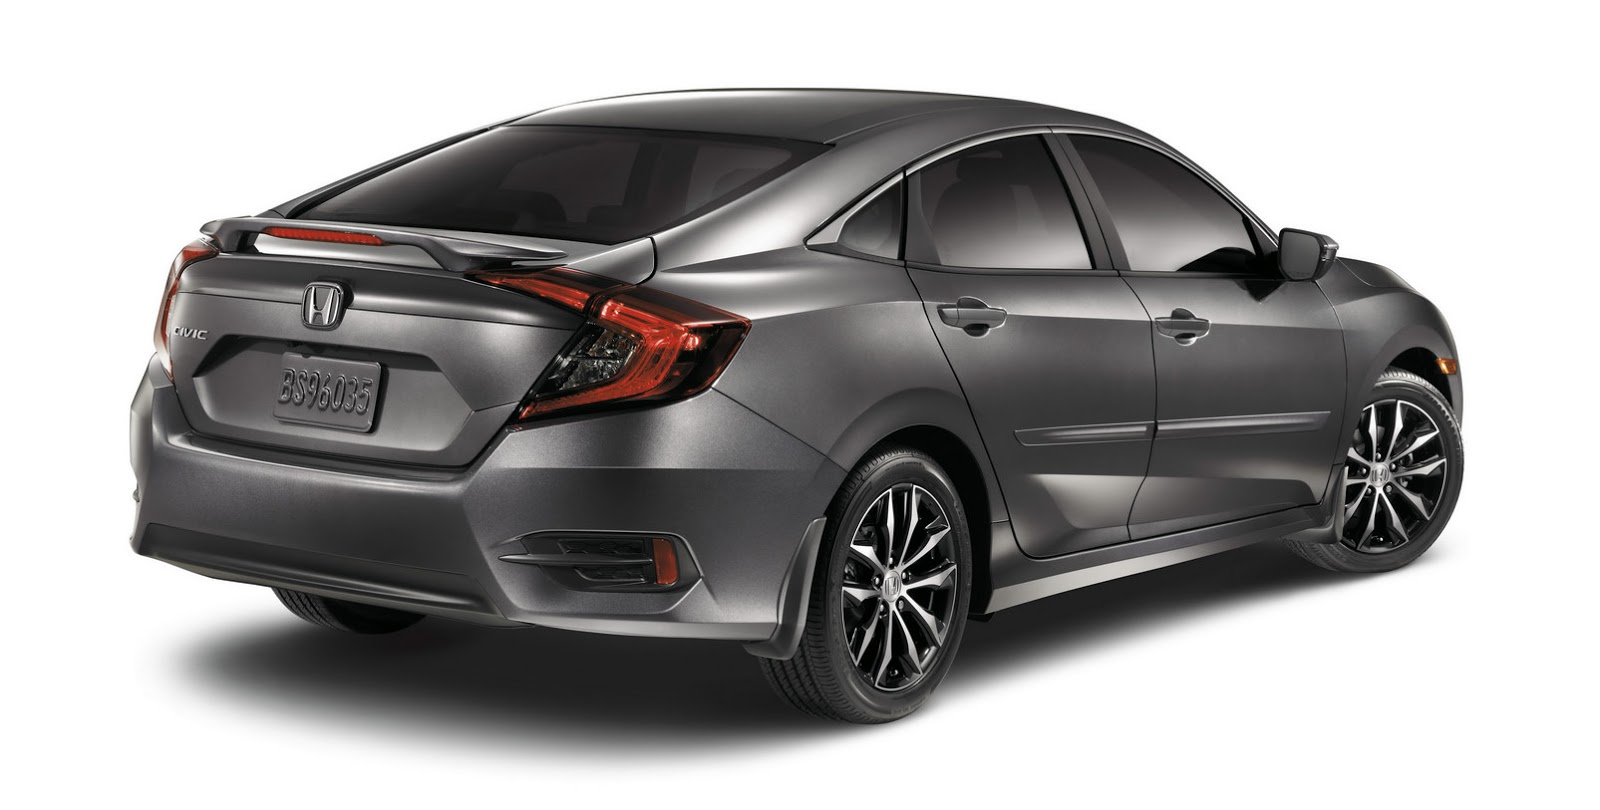 Honda Civic Sedan Aero Kit 2016